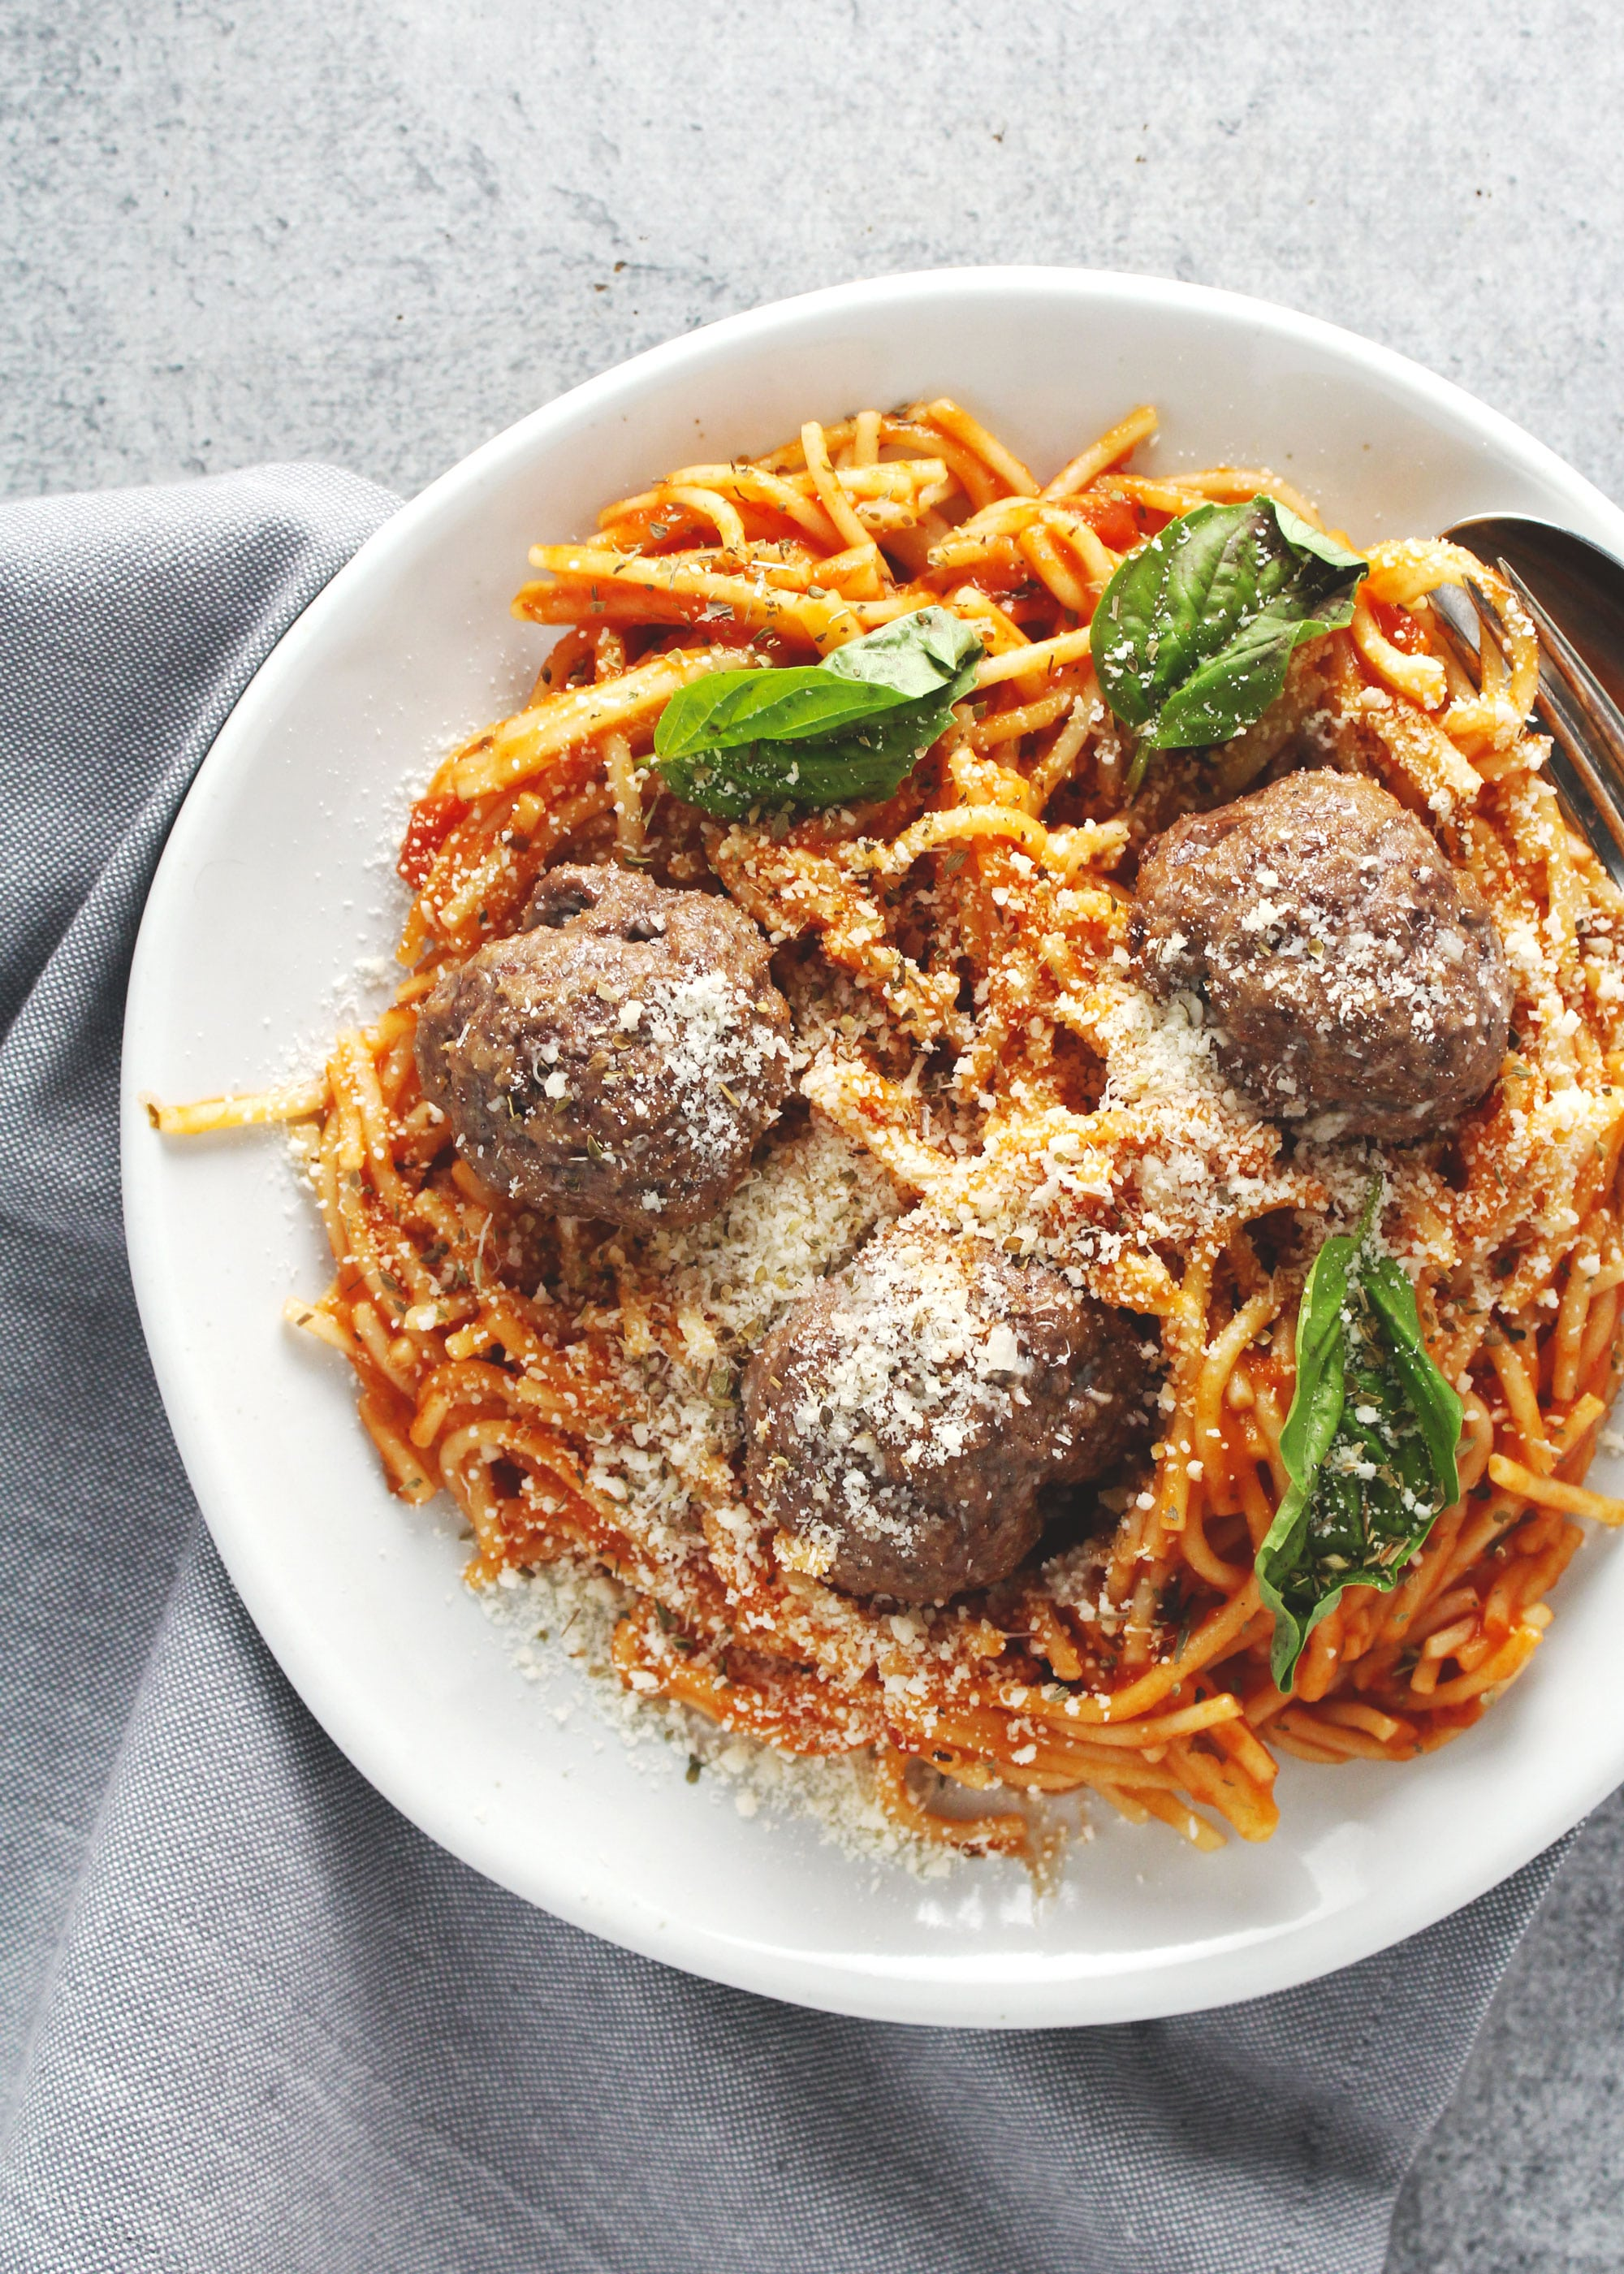 Spaghetti and meatballs with basil on top on a white plate.